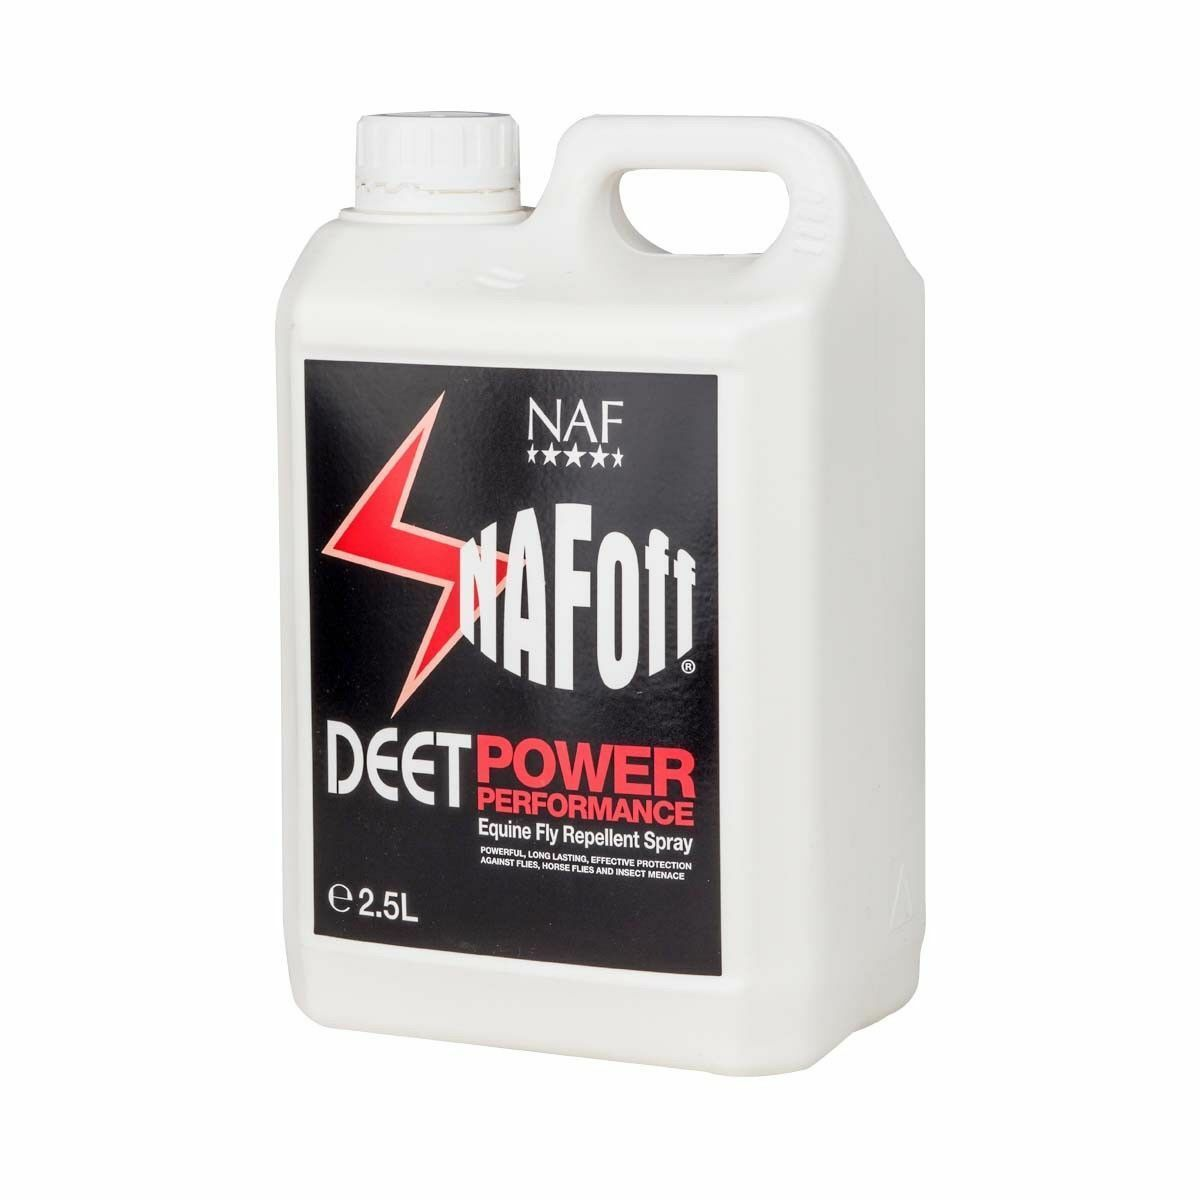 NAF OFF DEET Power Performance refill 2.5L